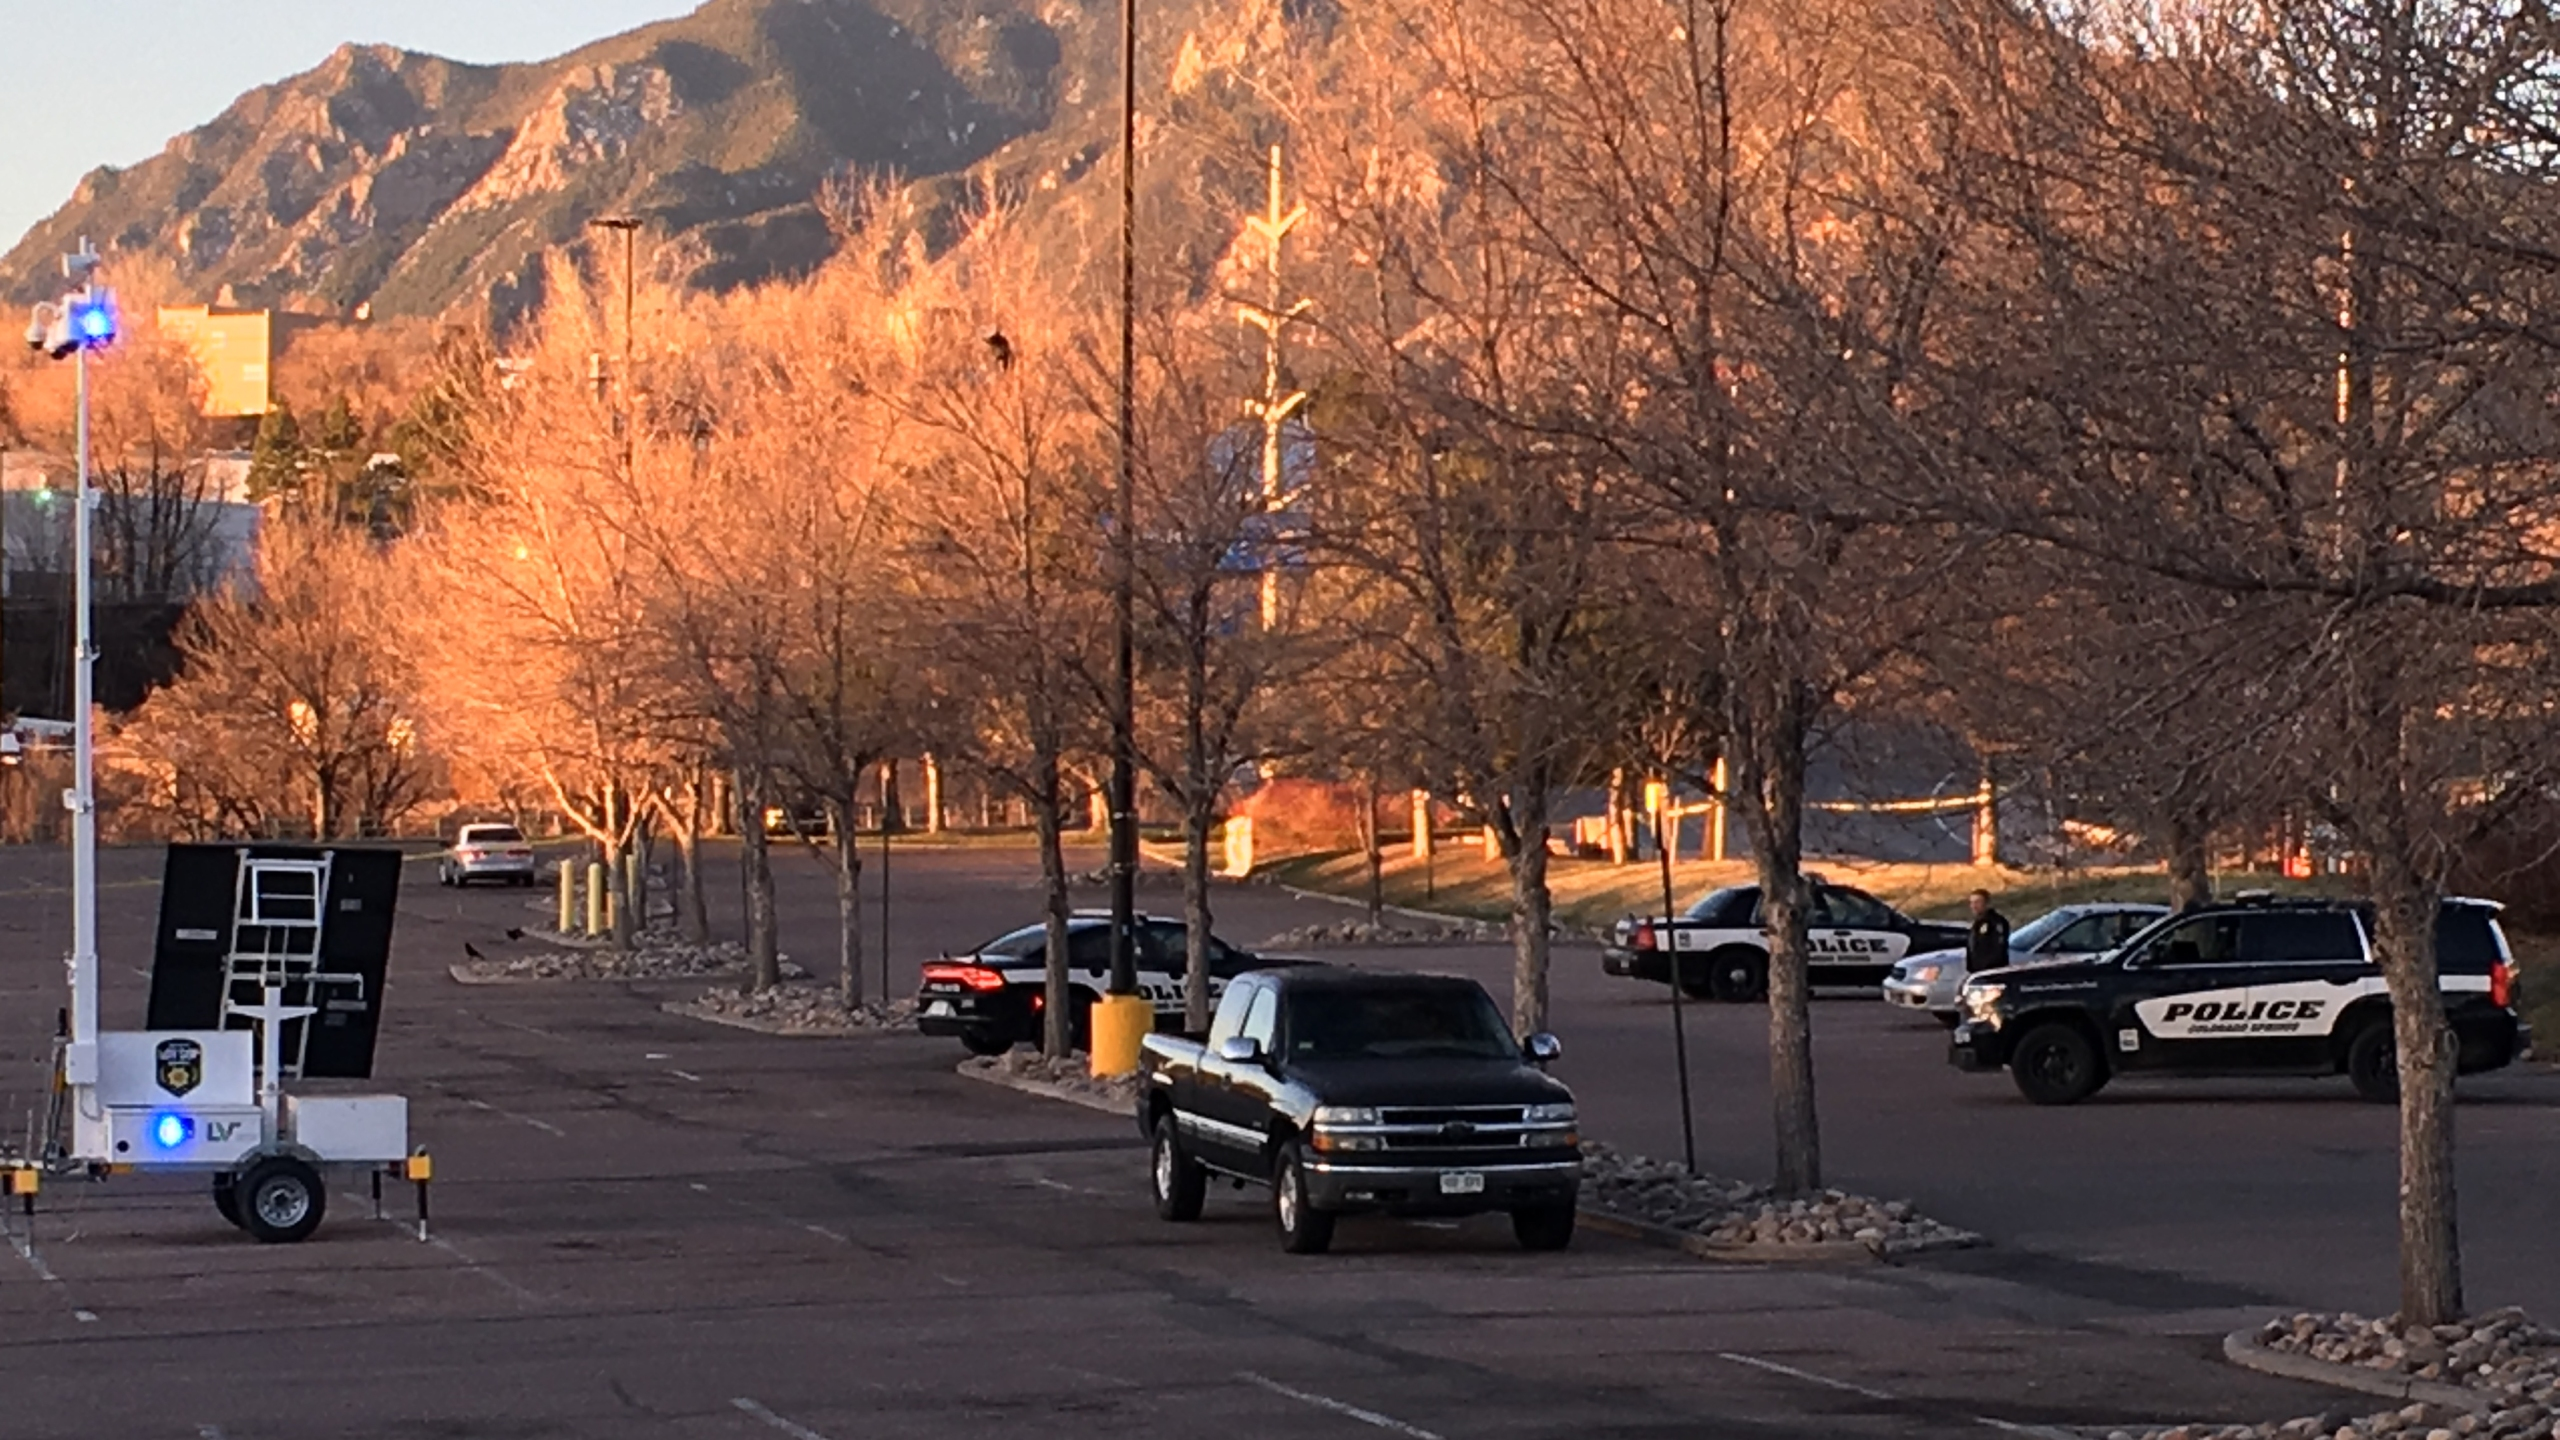 Police are investigating after a woman was found shot to death in a car at the Walmart on 8th Street in western Colorado Springs Thursday morning. P